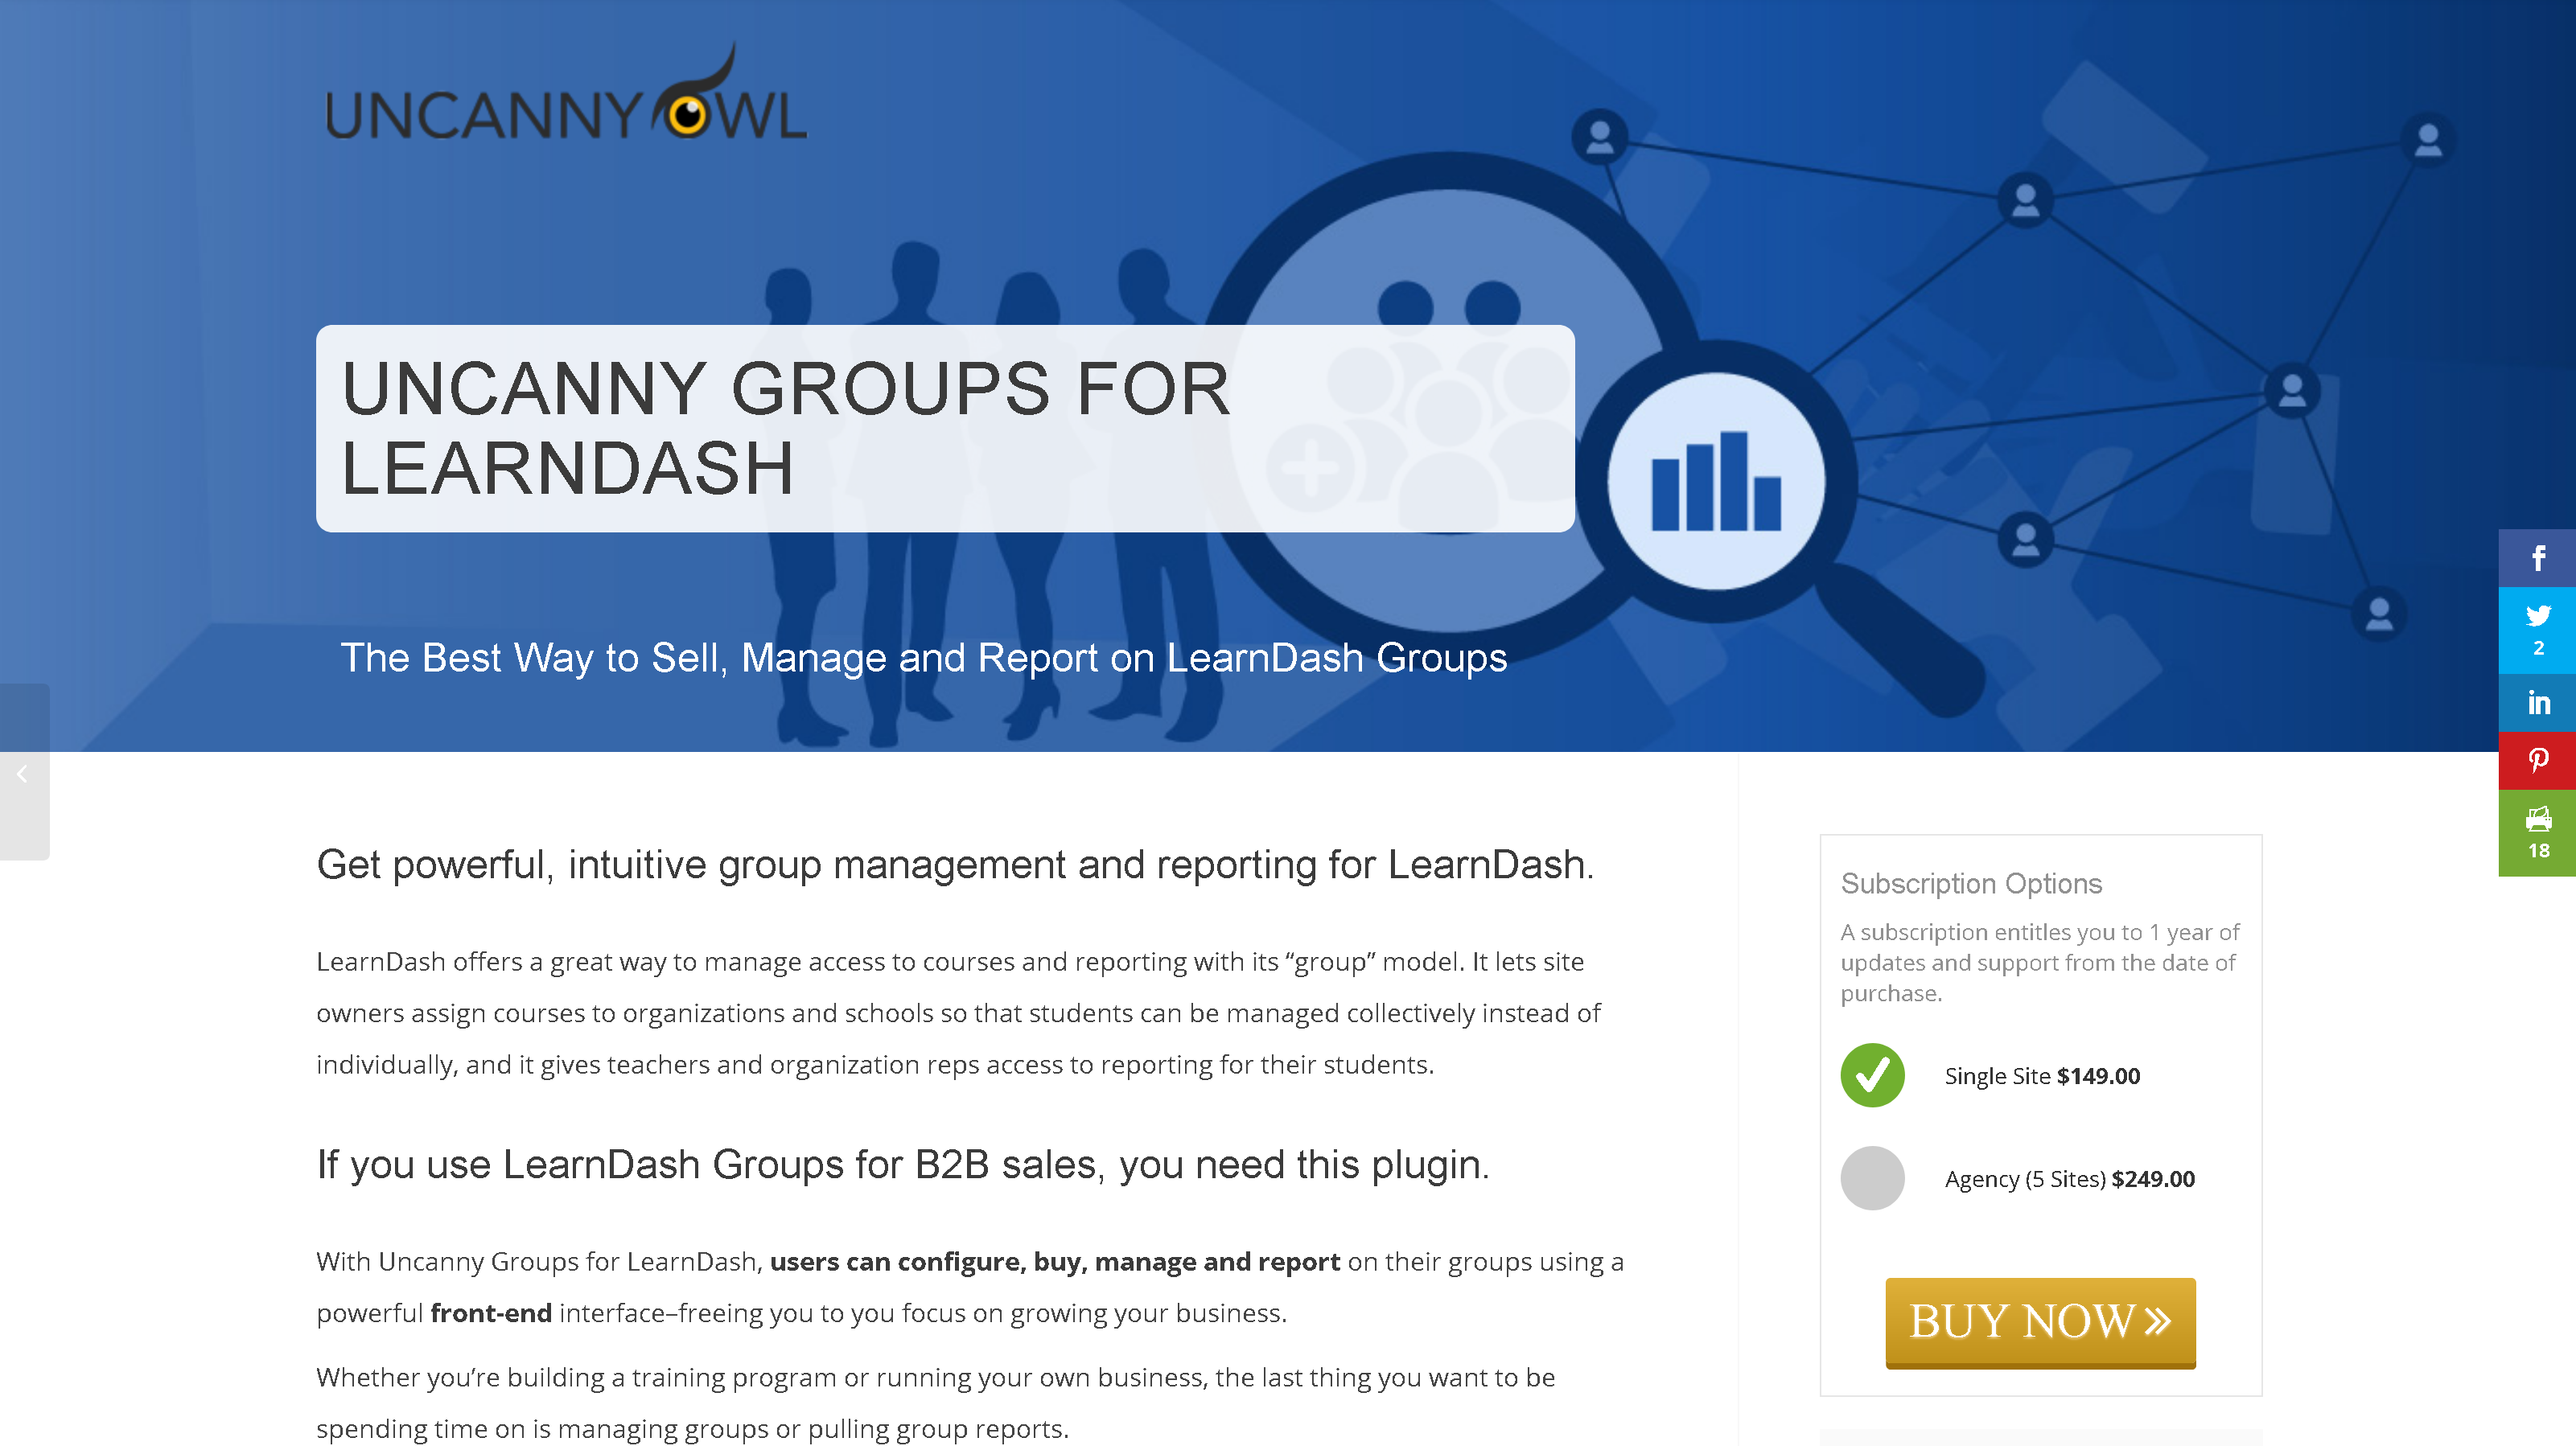 Uncanny Learndash Groups 3.10.1 – Intuitive group management and reporting for LearnDash